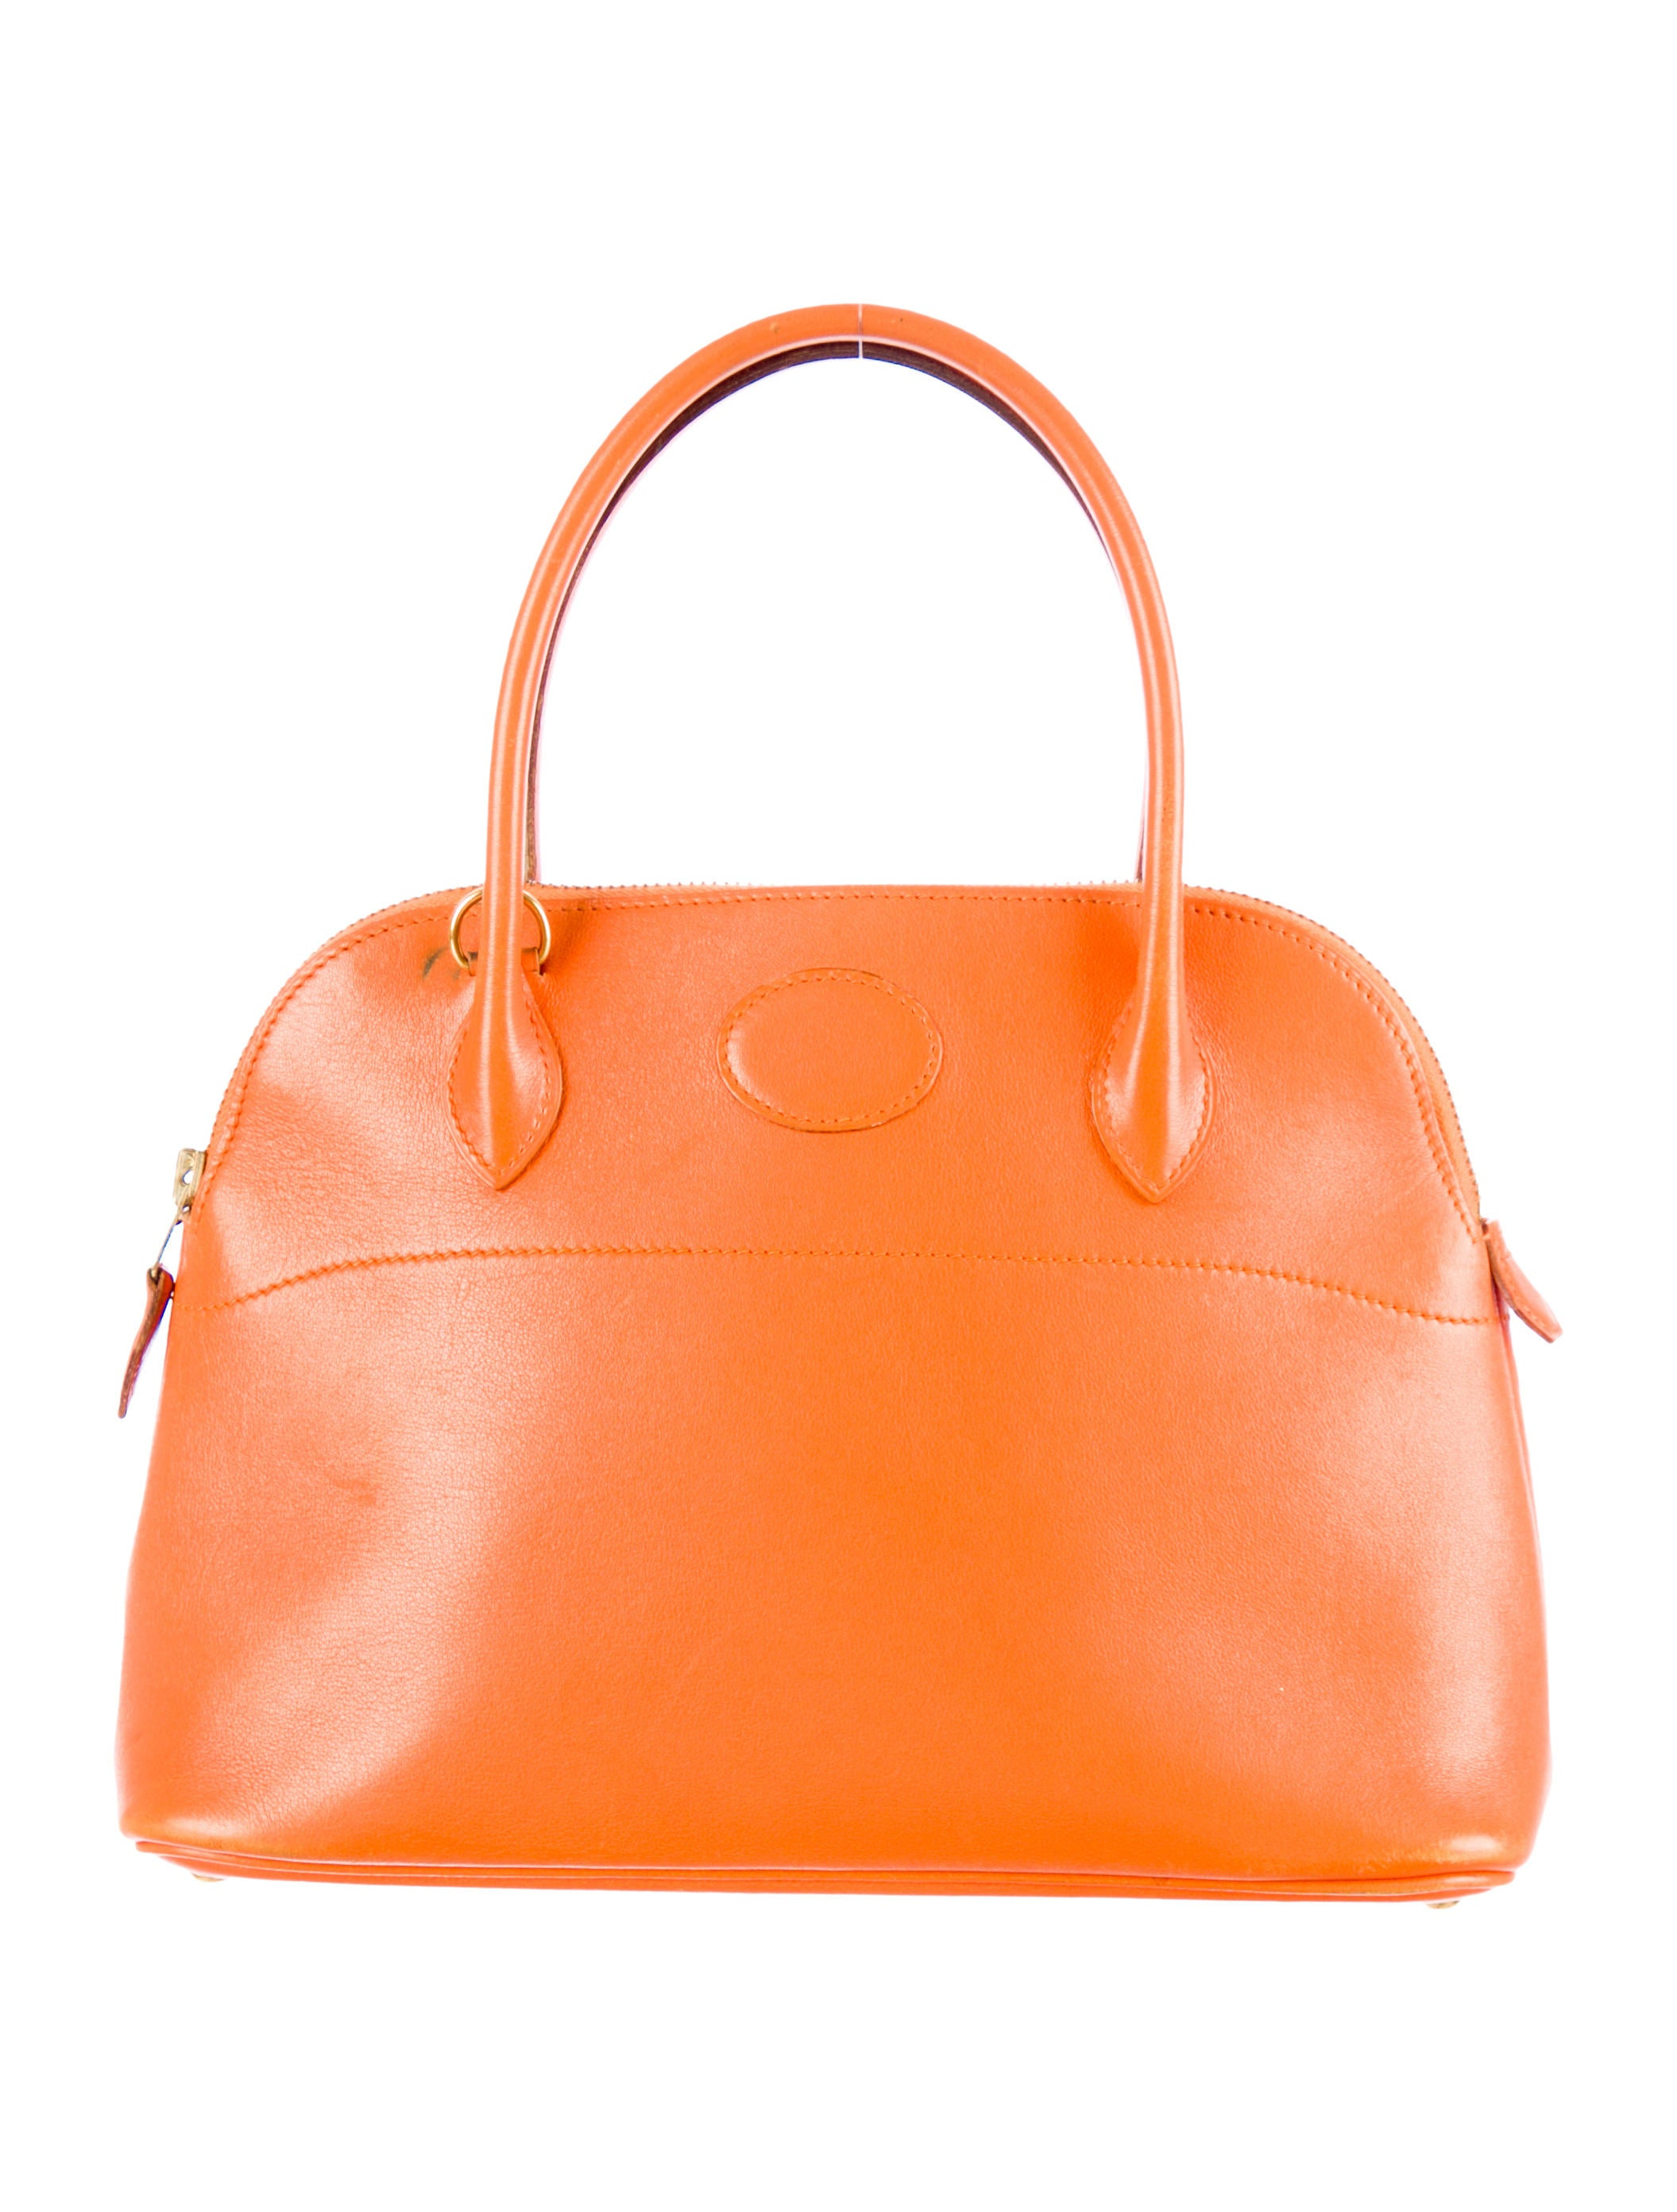 New Hermes Bags For Women Hermes Lindy Bag Price